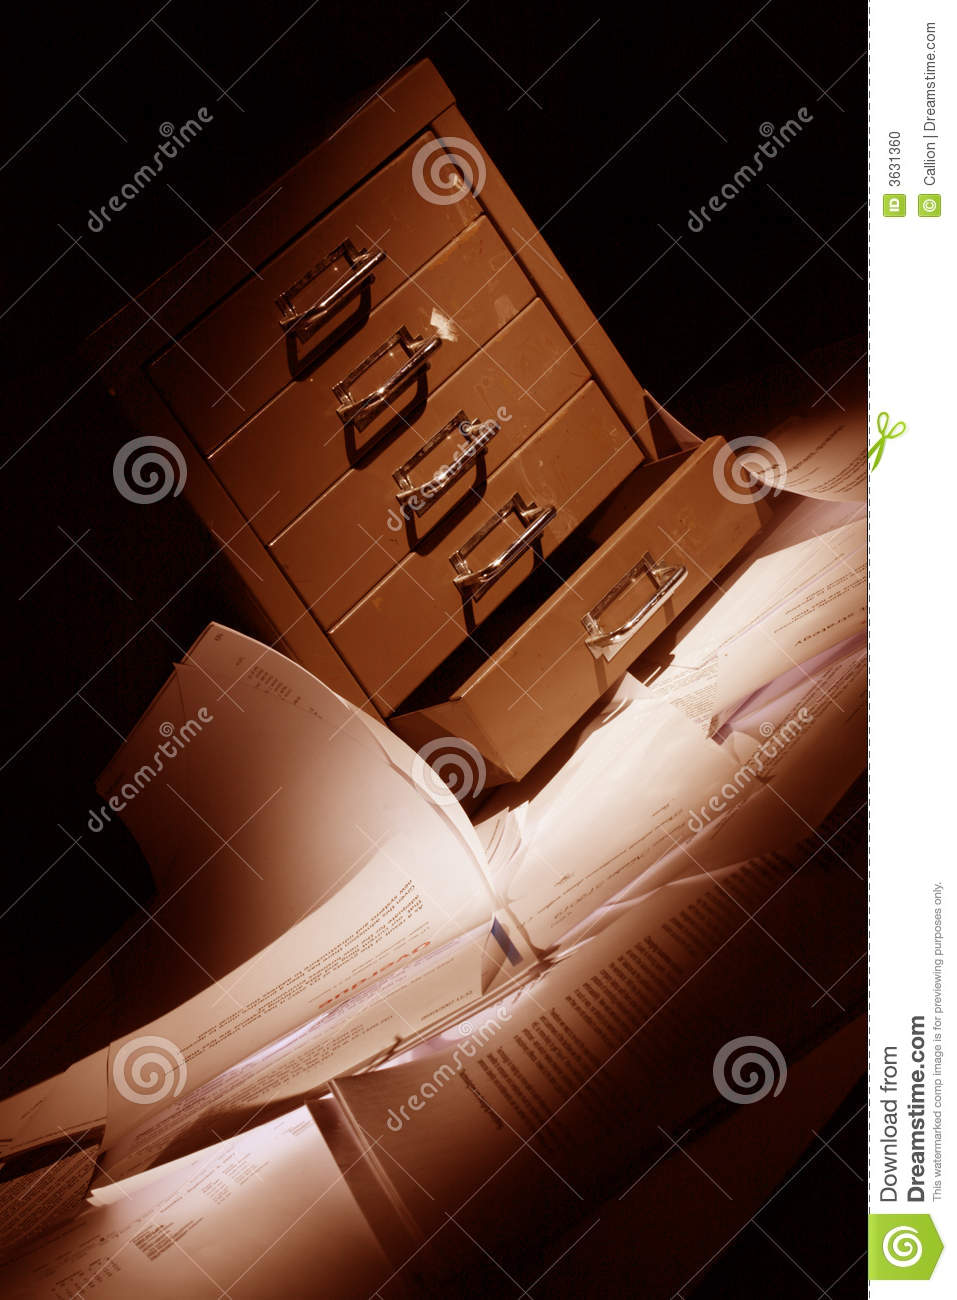 Filling Cabinet With Documents All Over The Floor Stock